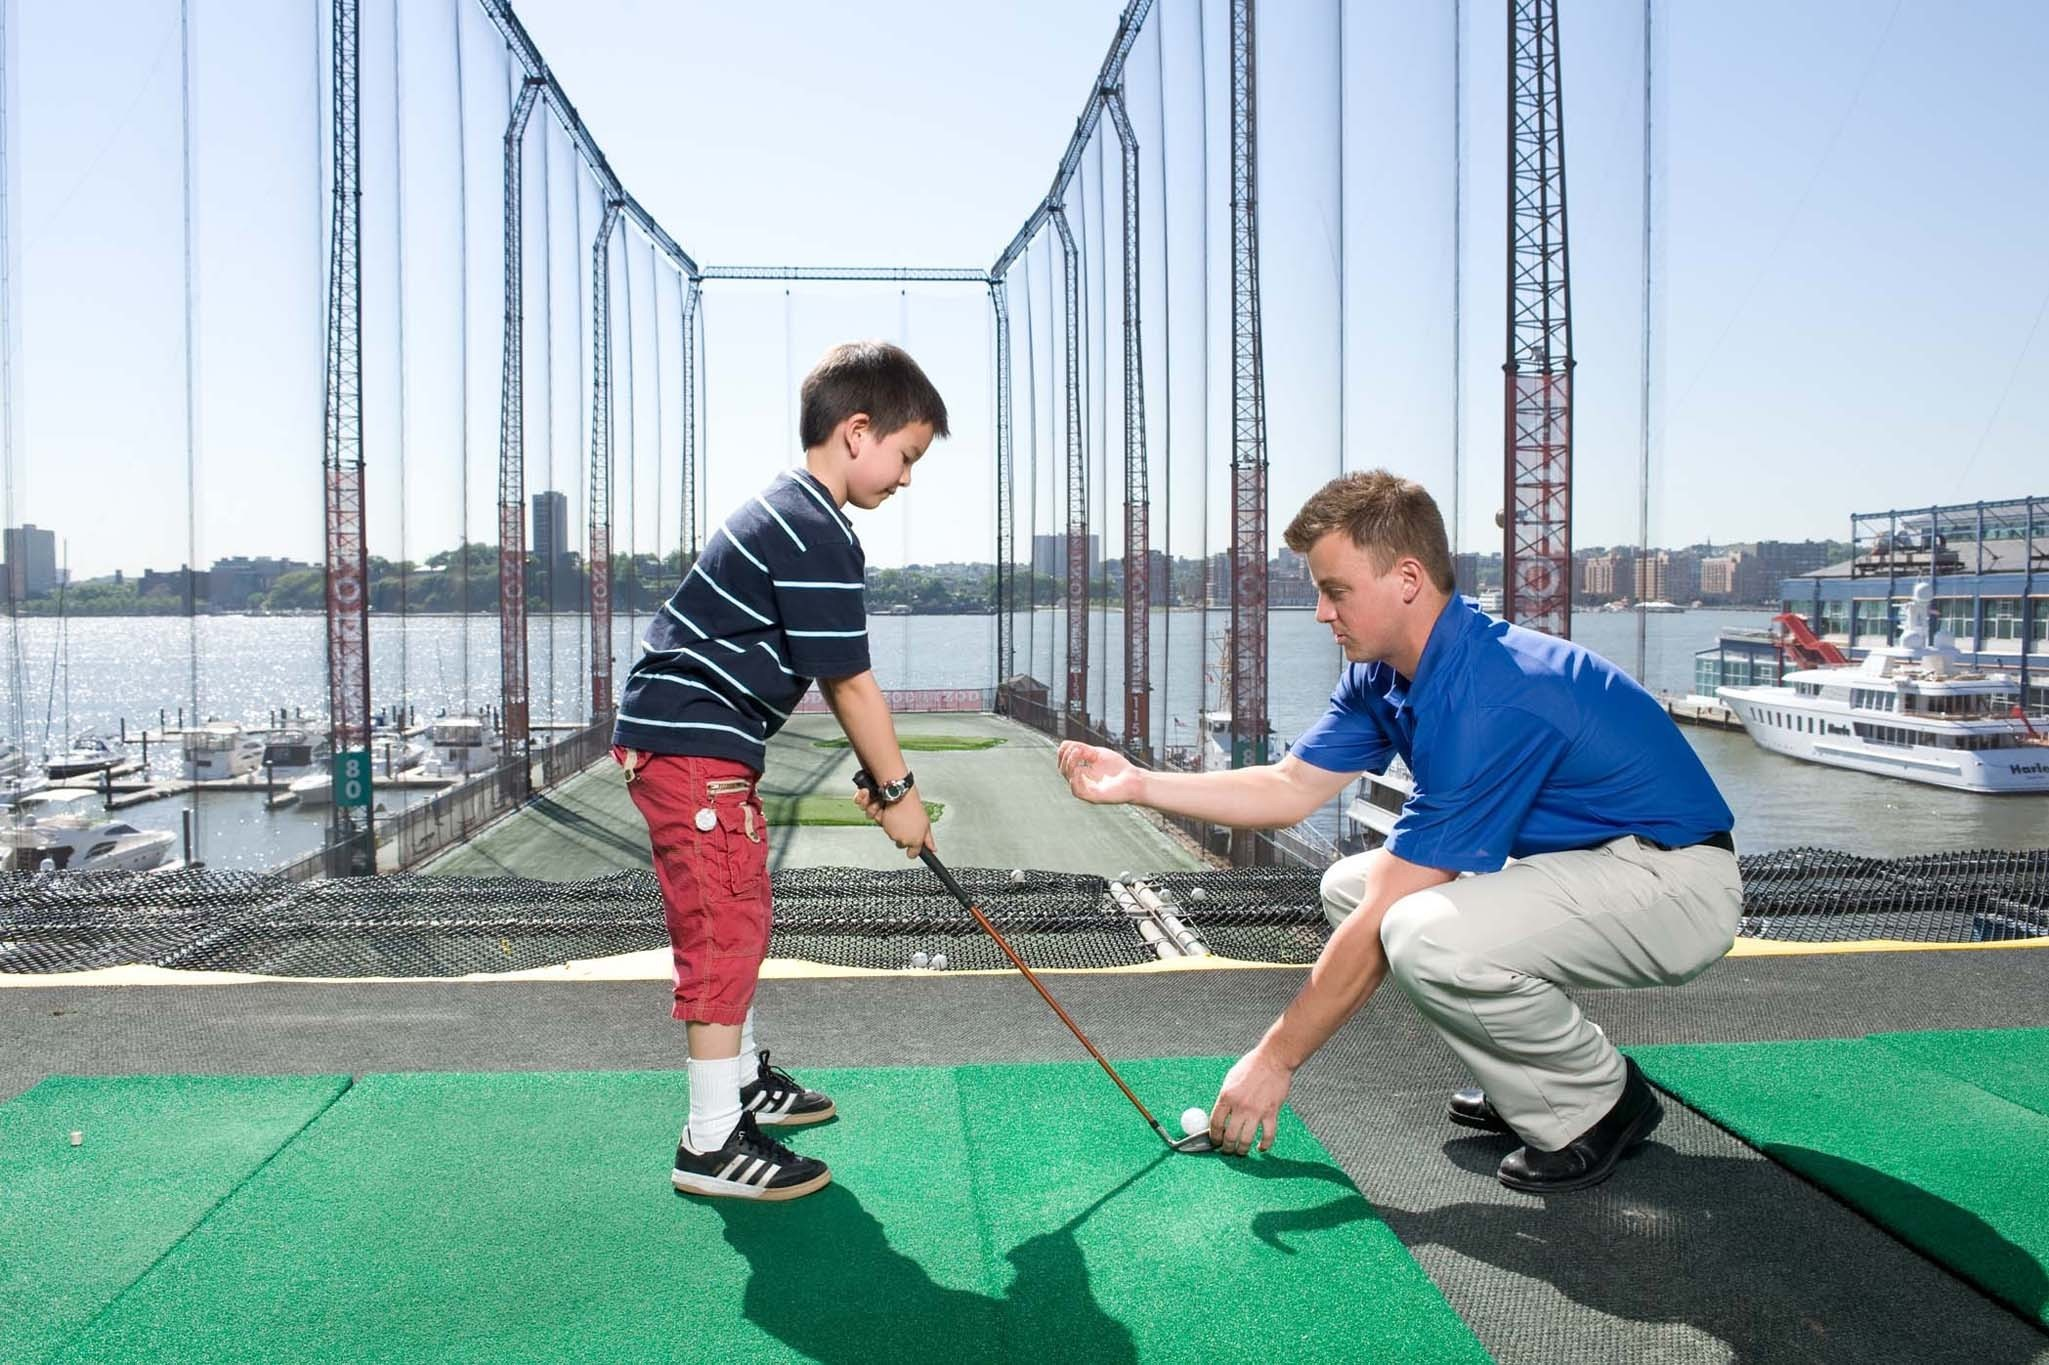 Take a swing at The Golf Club at Chelsea Piers